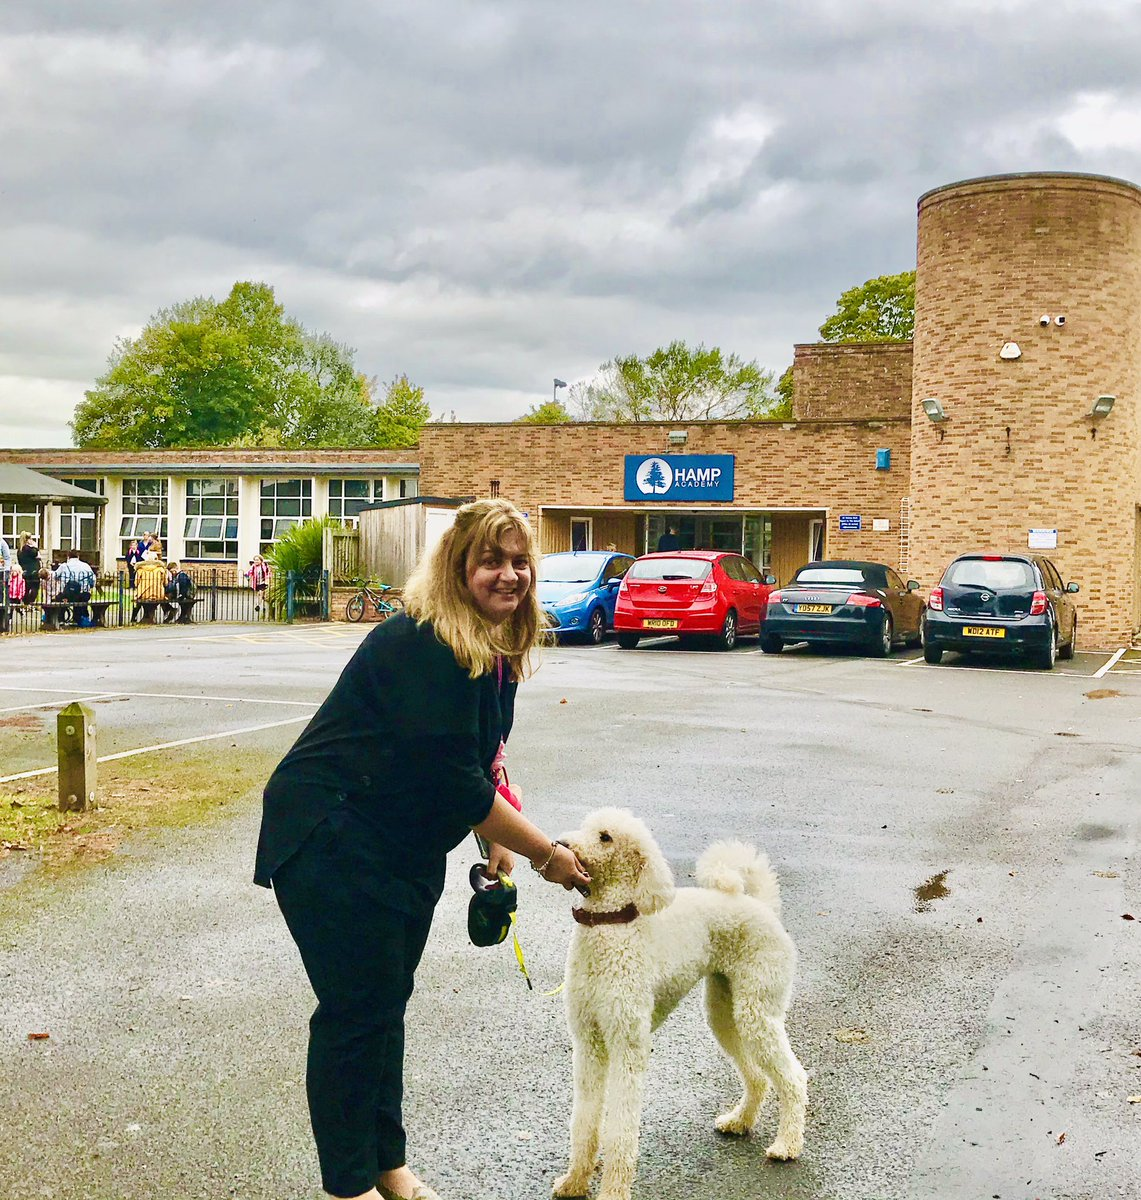 #HadTheBestDay  Diane & Bella 🐩 from @HampAcademy. Lovely staff & 350 kids (in 4 bubbles) many coping with v tough times yet coming out with THE best & bonkers ways to be a #camerado & #LookOutForEachOther  Thank you 4 having me!  @Camerados_org @Cathy_Creswell @LucindaP0well https://t.co/88aKcSx8Mh